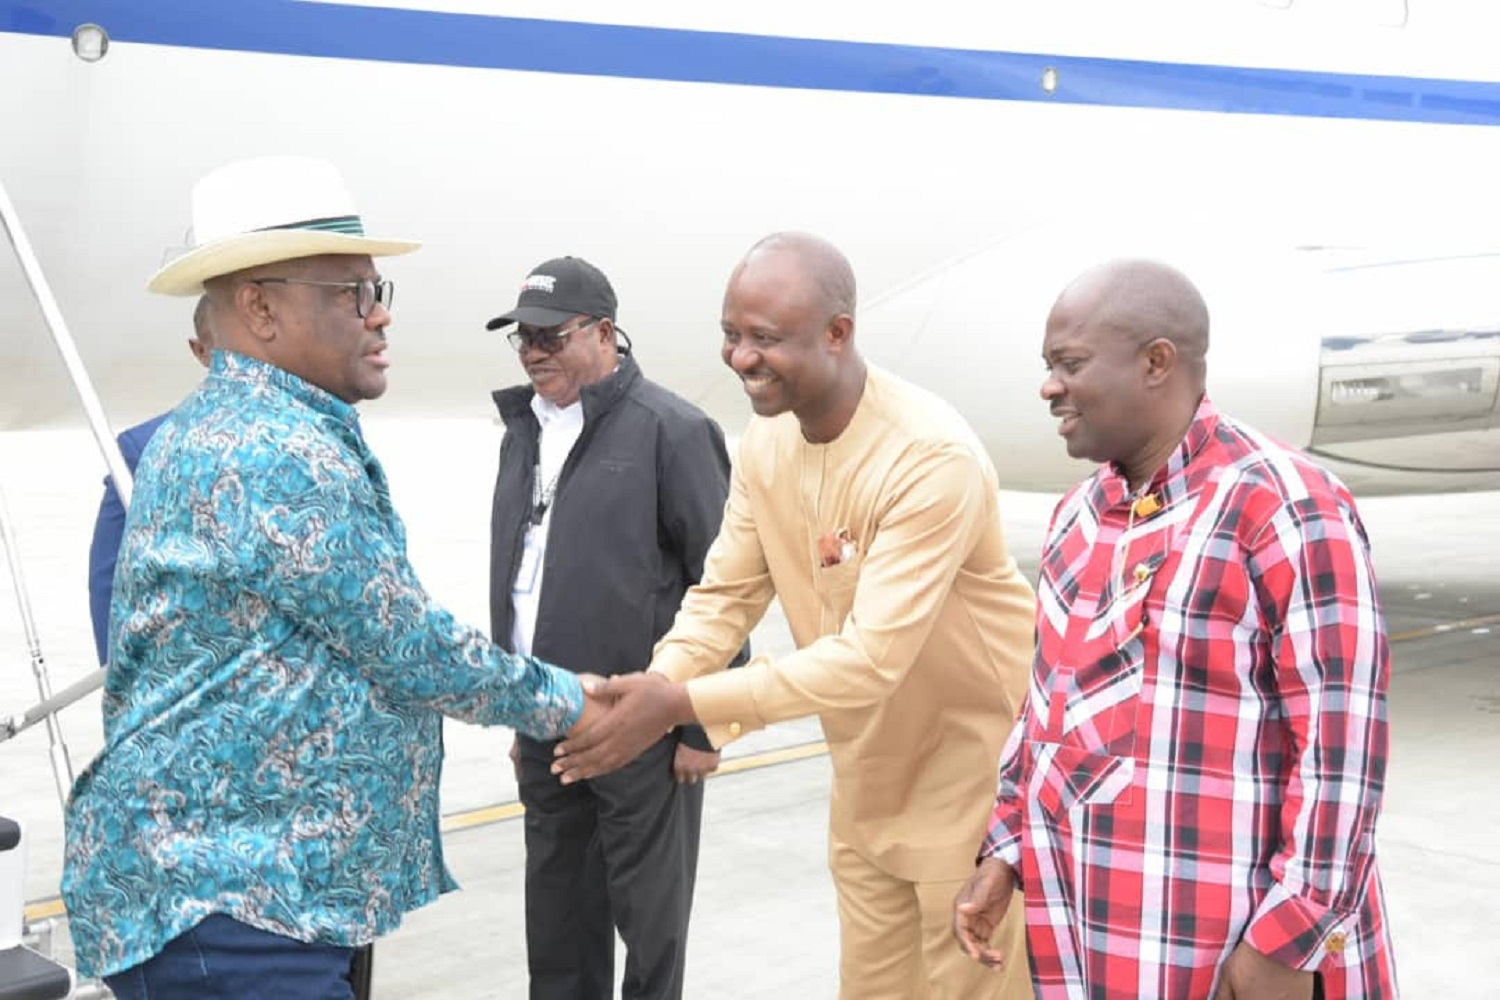 Governor Wike returns after official visit to Addis Ababa